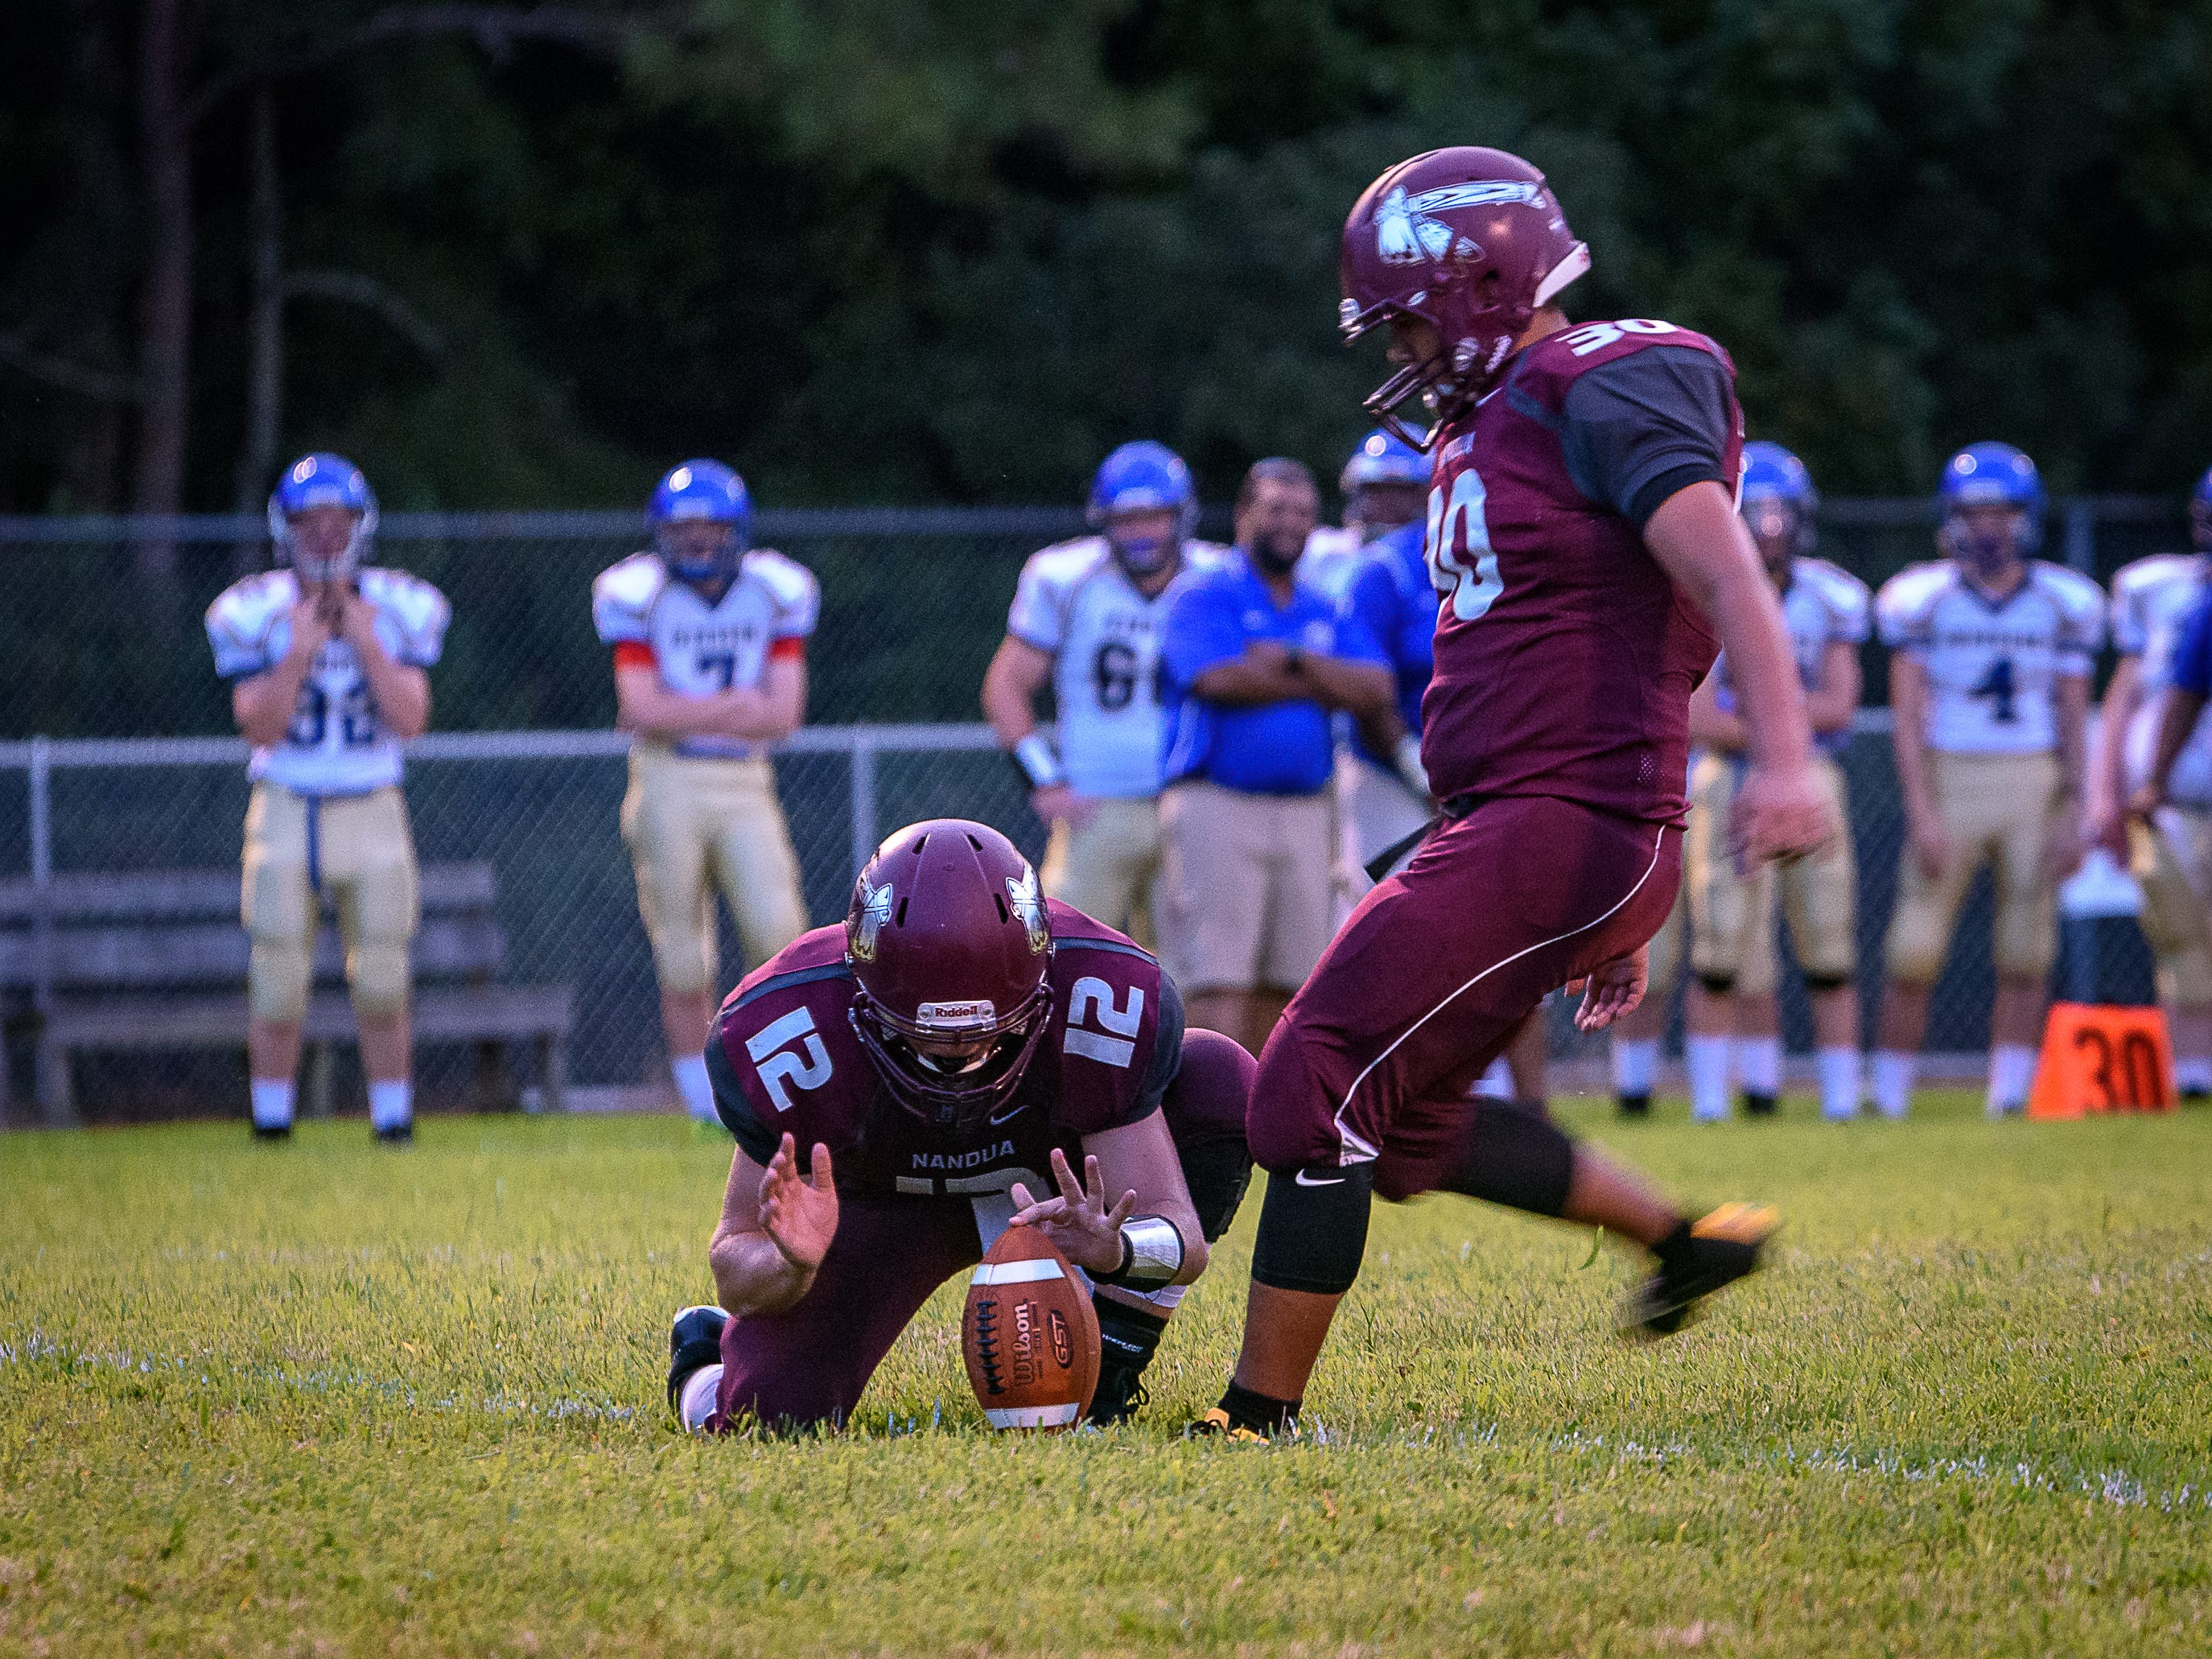 Nandua's Kristo Castillio kicks for the extra point as Joseph Teasley holds the ball.